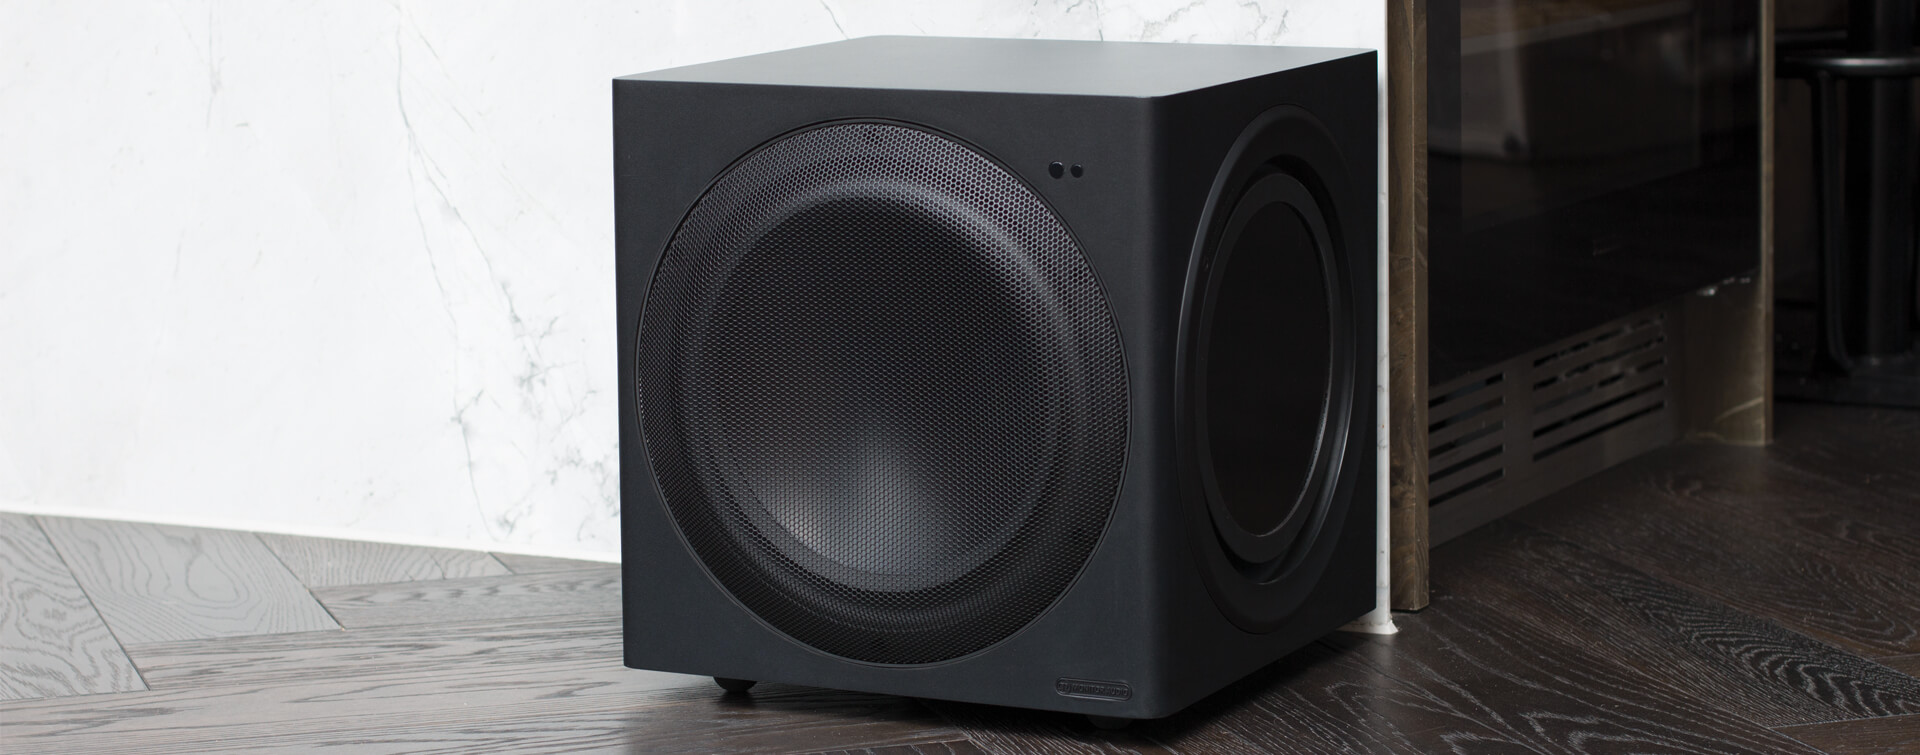 CW10 | Subwoofer | Monitor Audio